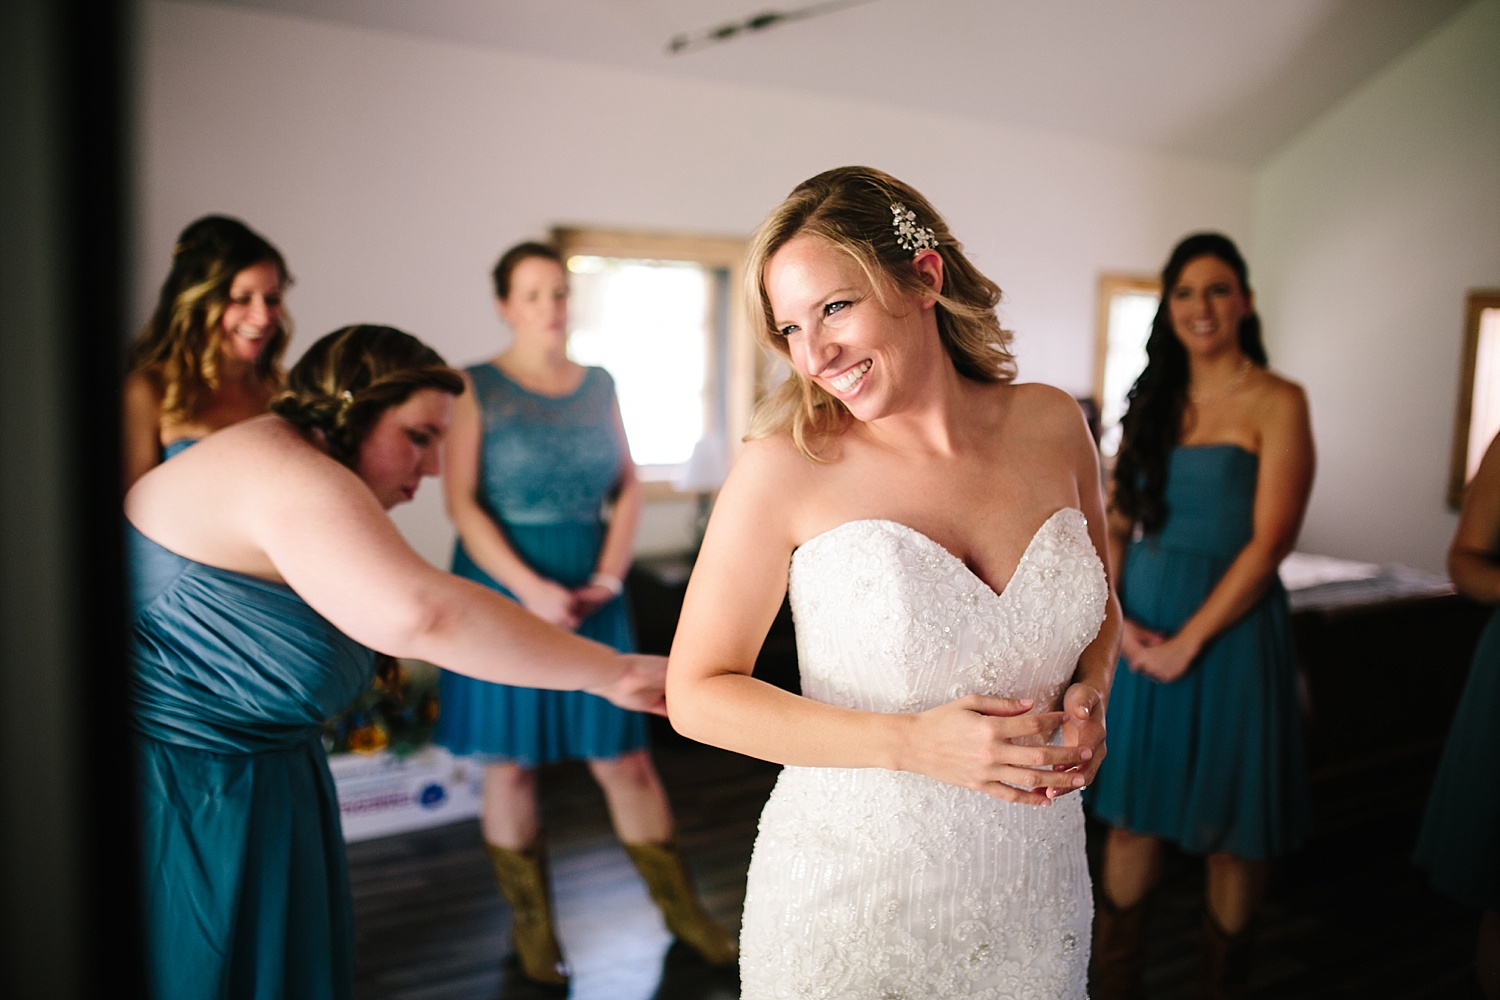 jennyryan_newbeginnings_farmstead_upstatenewyork_wedding_image035.jpg